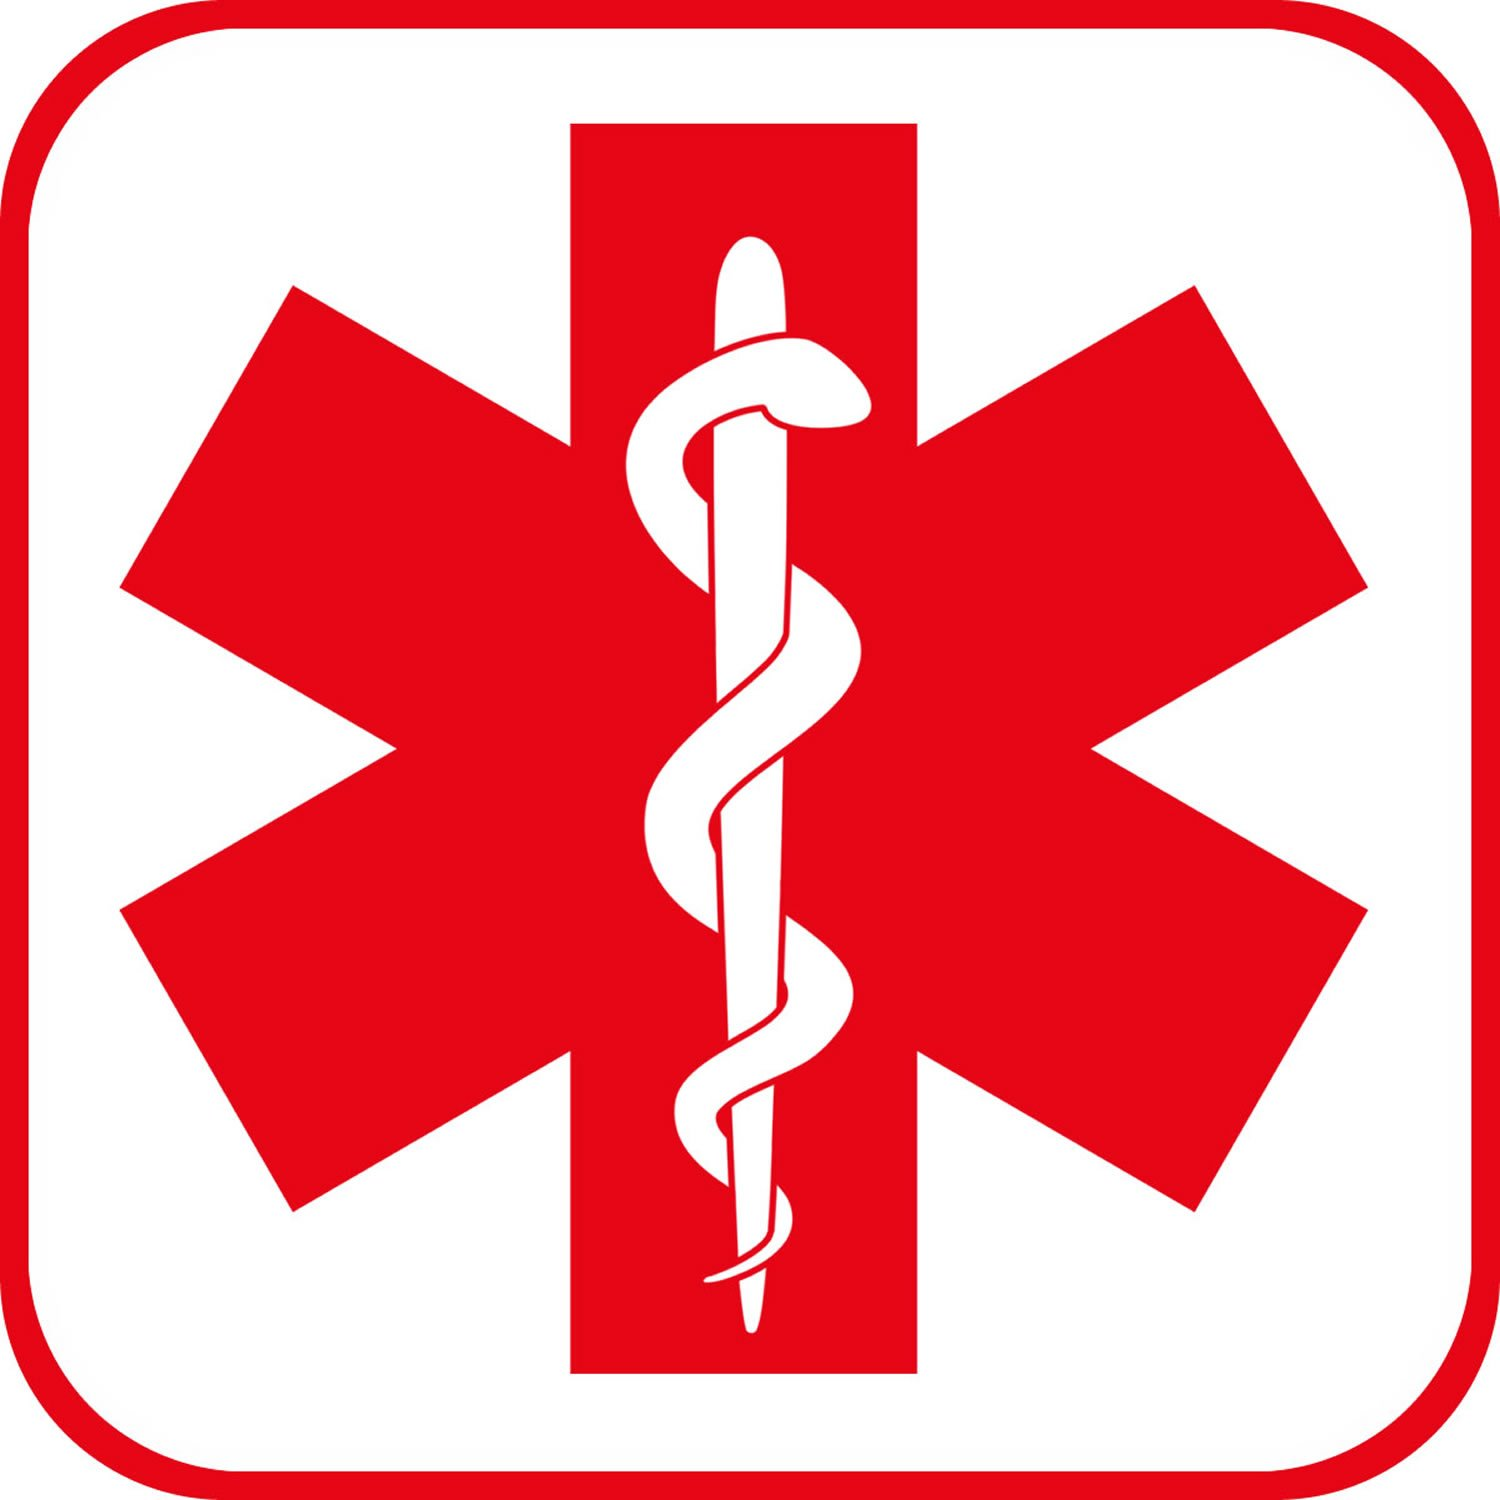 1500x1500 Red Cross Clipart Nurse Symbol